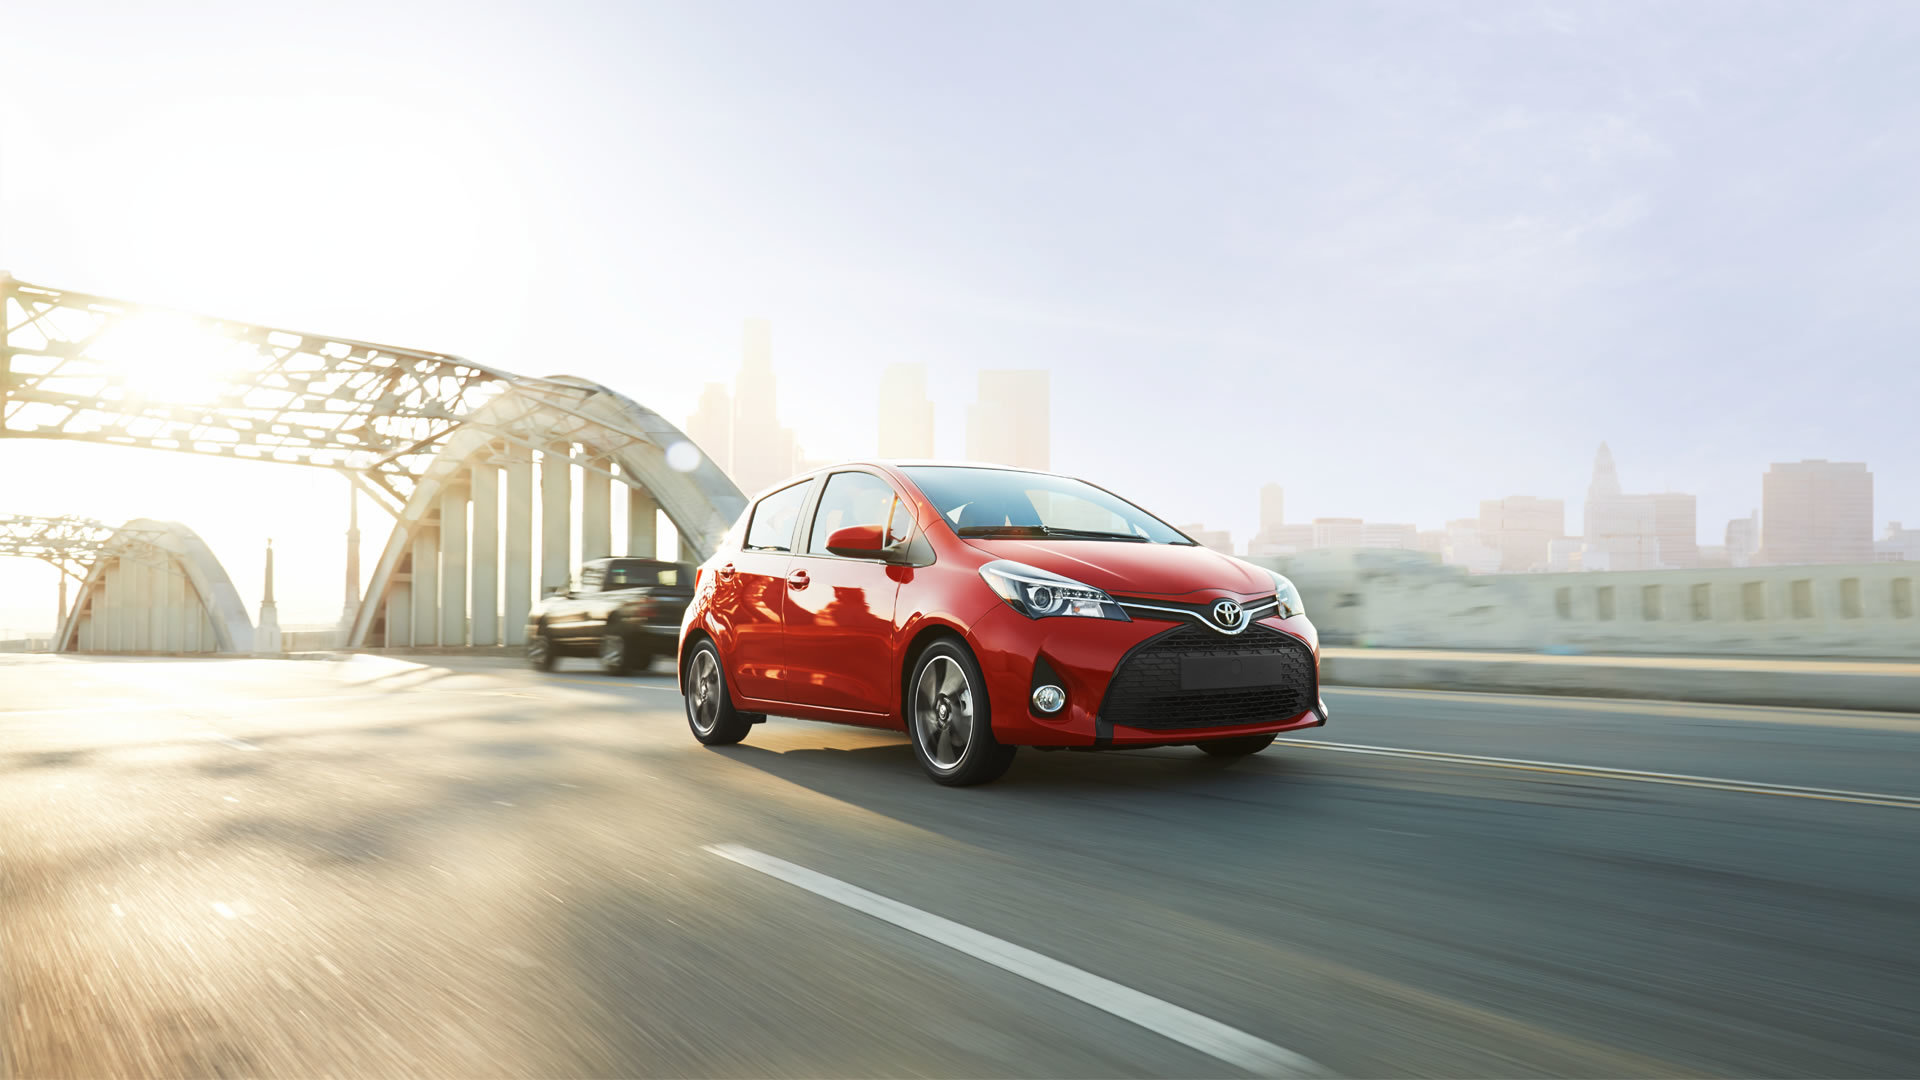 2015 Toyota Yaris for Sale in Auburn at Doxon Toyota